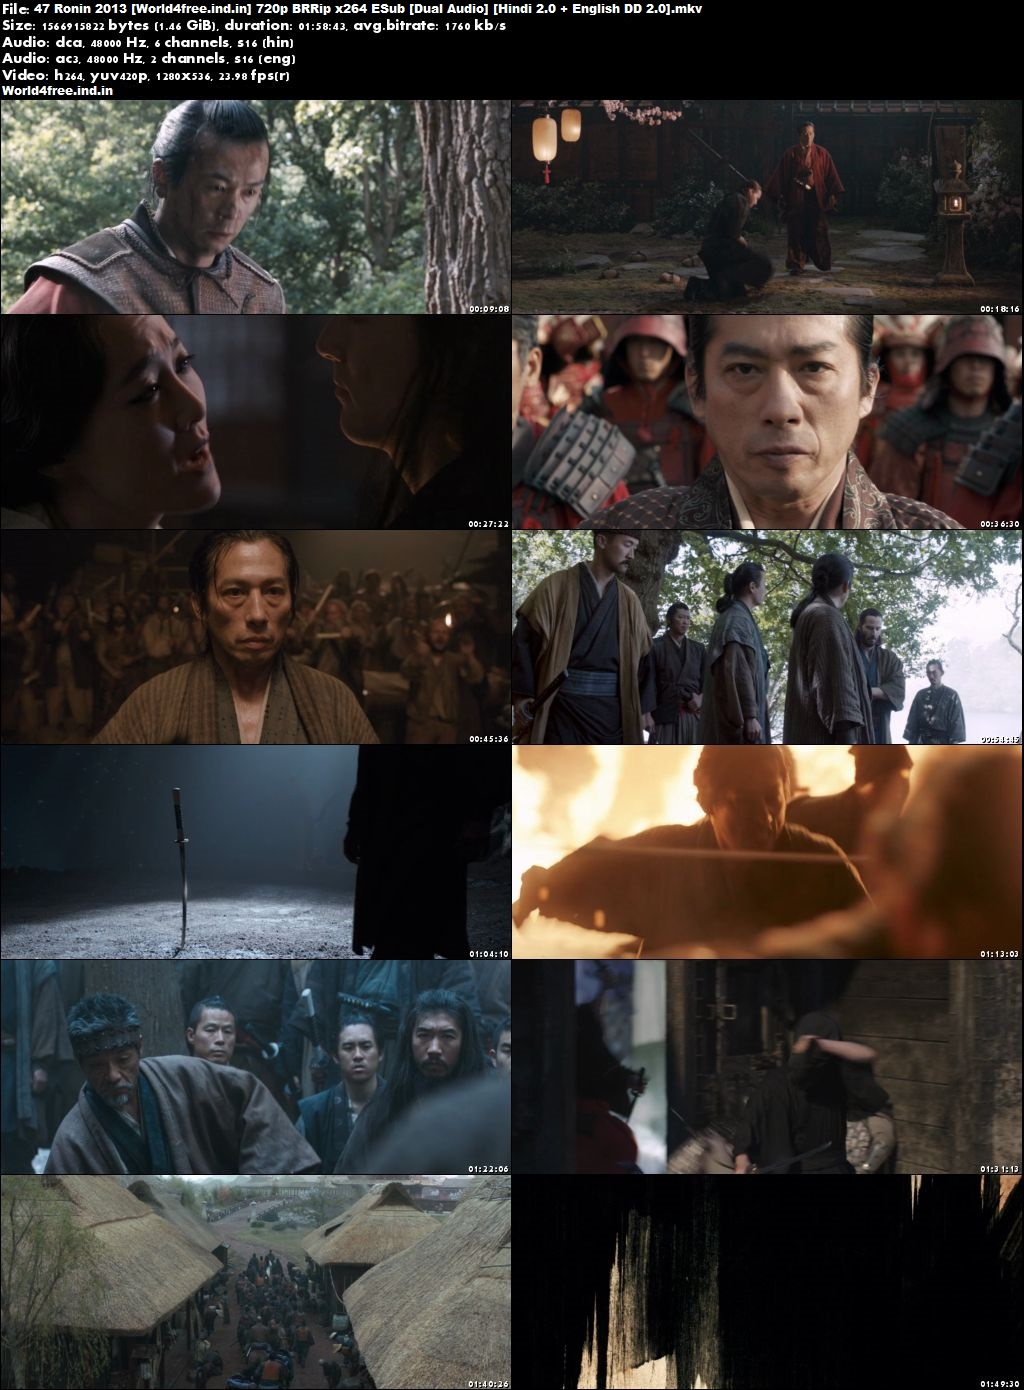 47 Ronin 2013 world4free.ind.in Full Hollywood BRRip 720p Dual Audio Download